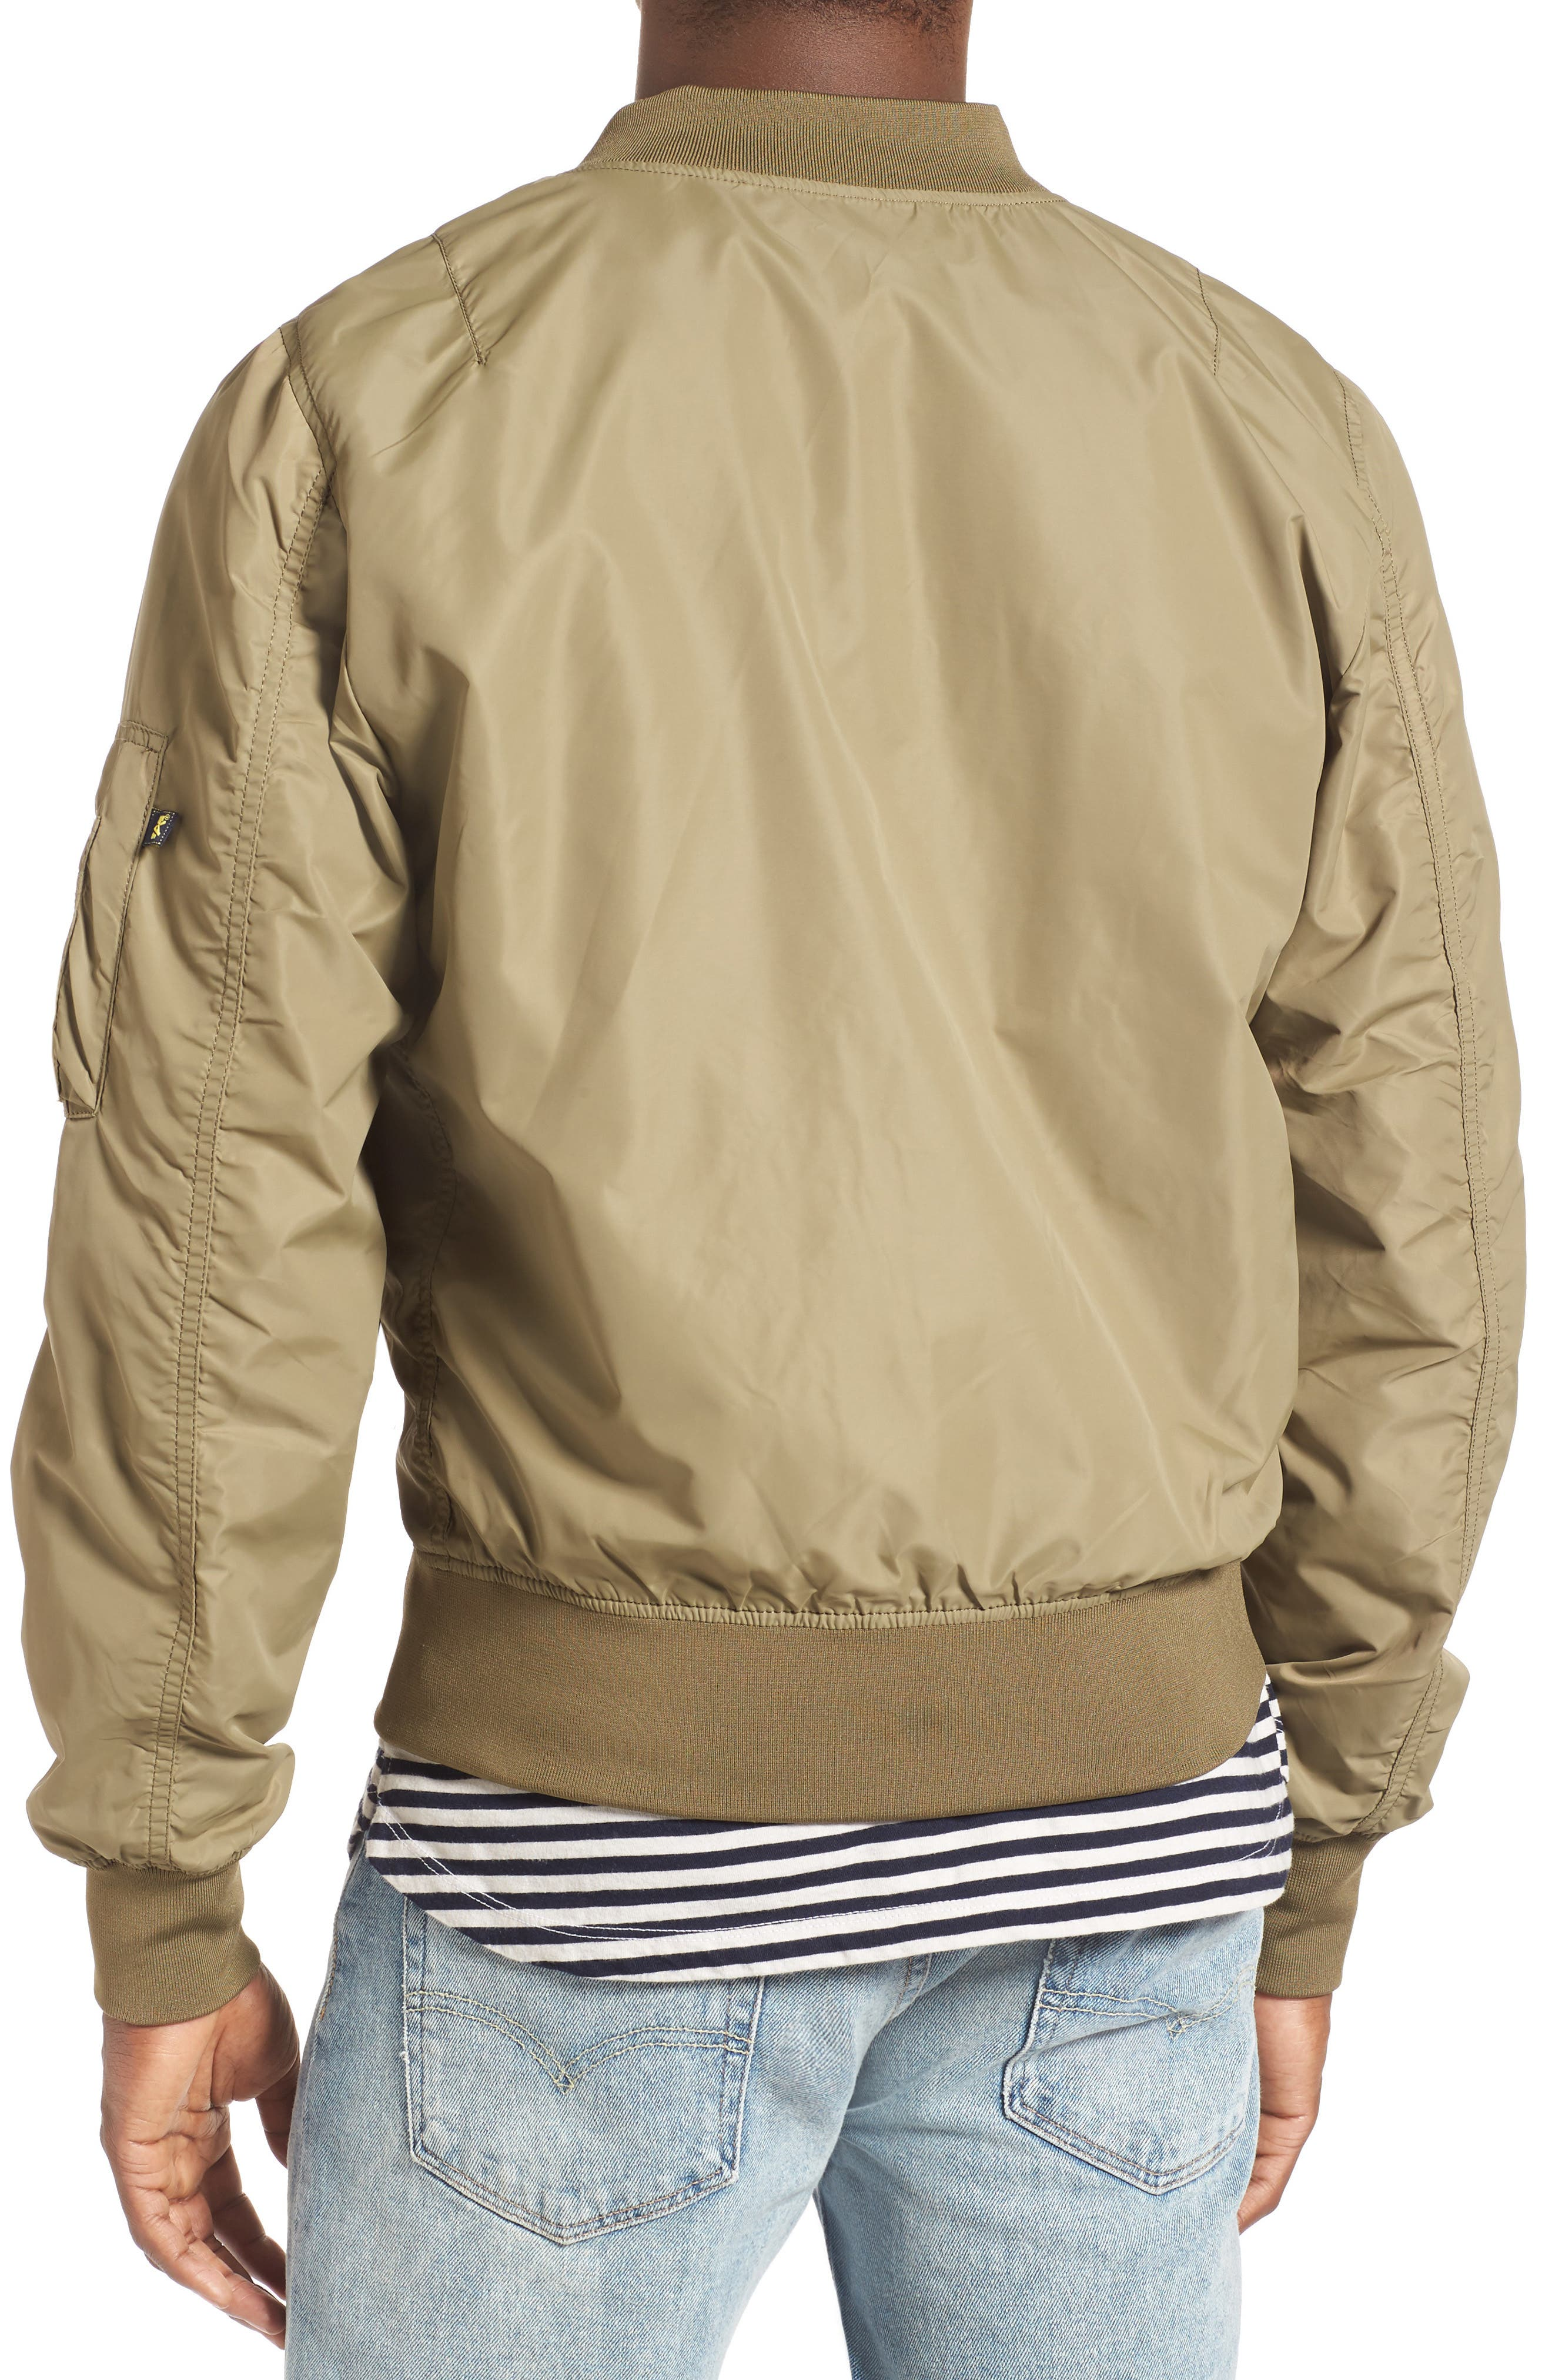 LB-2 Scout Reversible Flight Jacket,                             Alternate thumbnail 13, color,